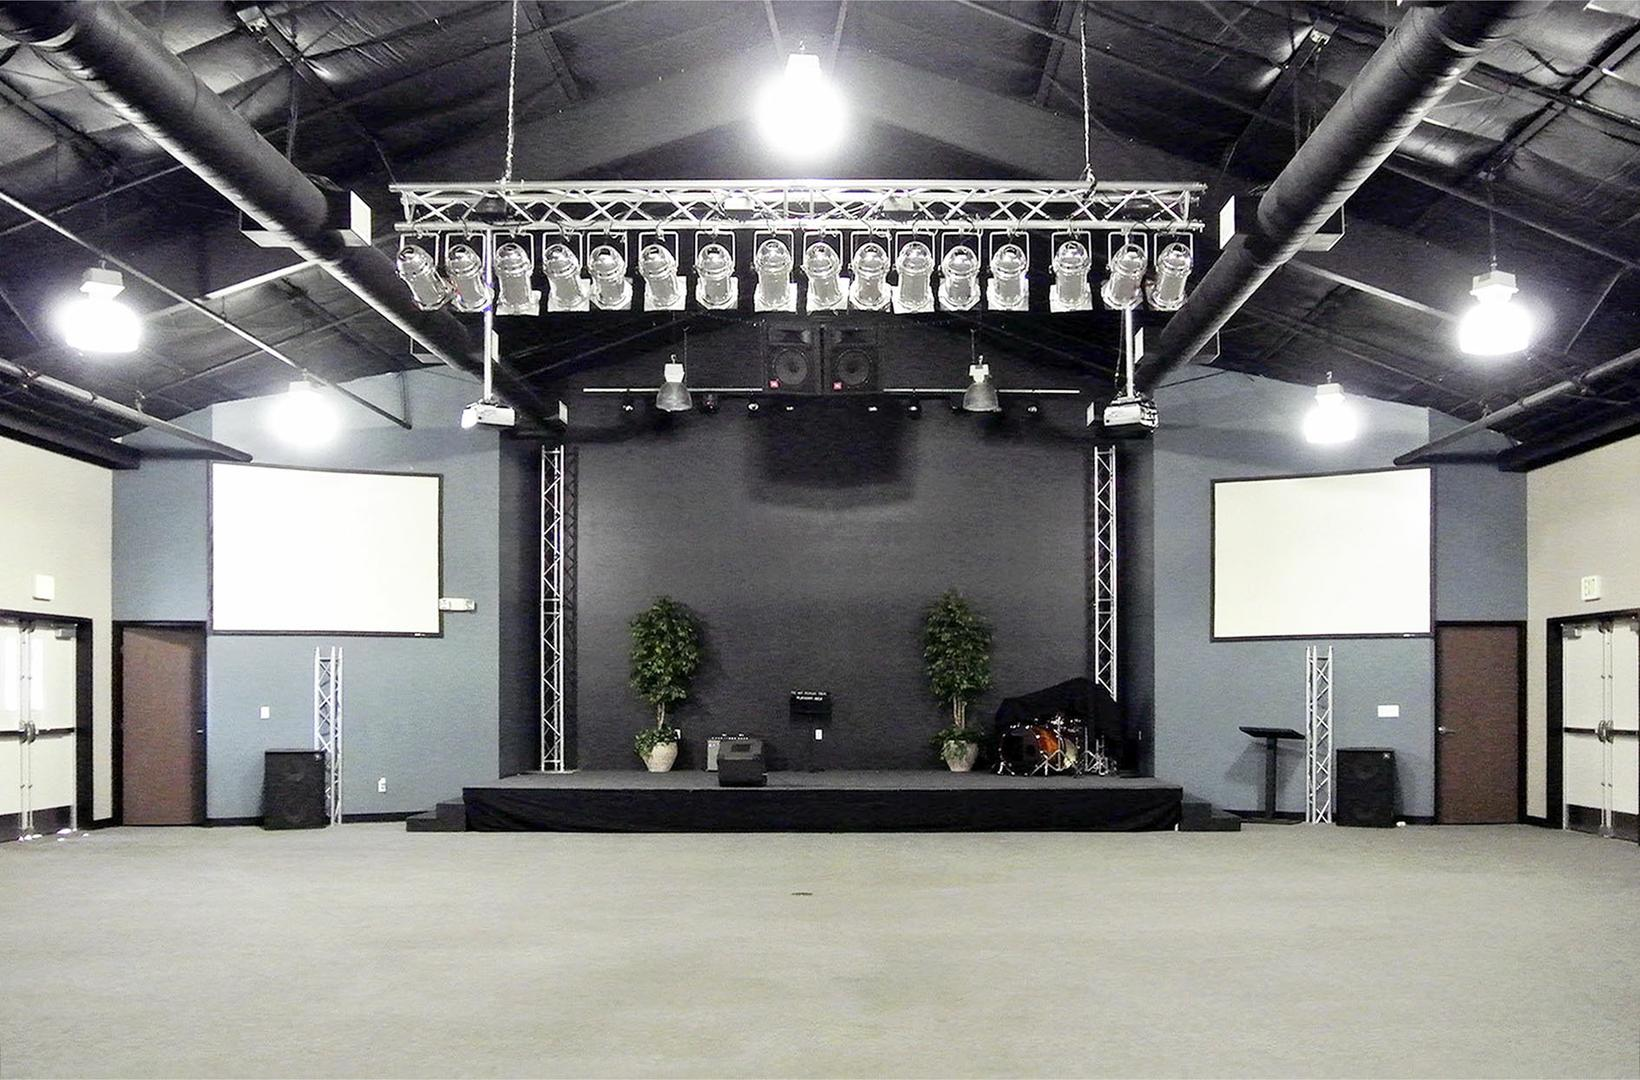 space at California Education and Performing Art - Auditorium